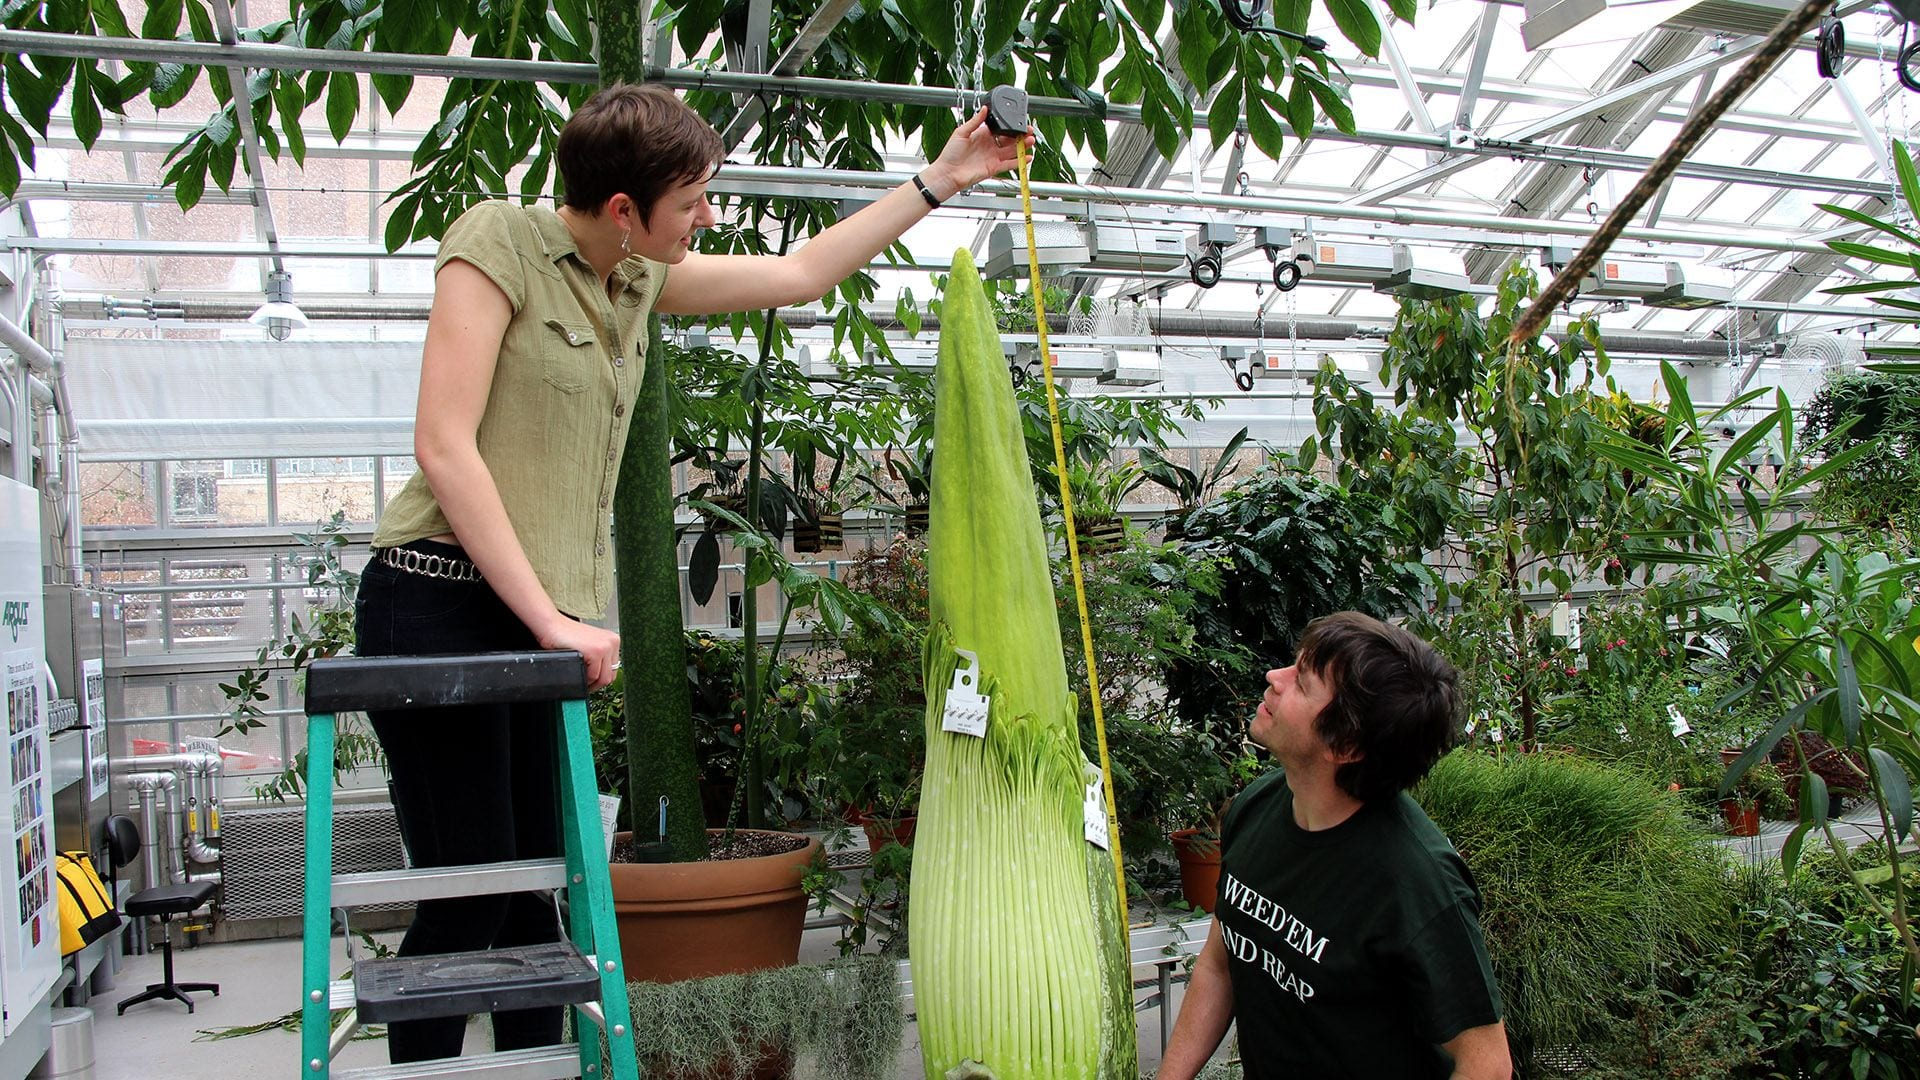 One of Cornell's two flowering-sized Titan arums — dubbed Wee Stinky for its putrid smell — is set to bloom for the fourth time. Rosemary Glos '20 and greenhouse grower Paul Cooper measure Wee Stinky Dec. 7 at the Liberty Hyde Bailey Conservatory. Photo by Craig Cramer.